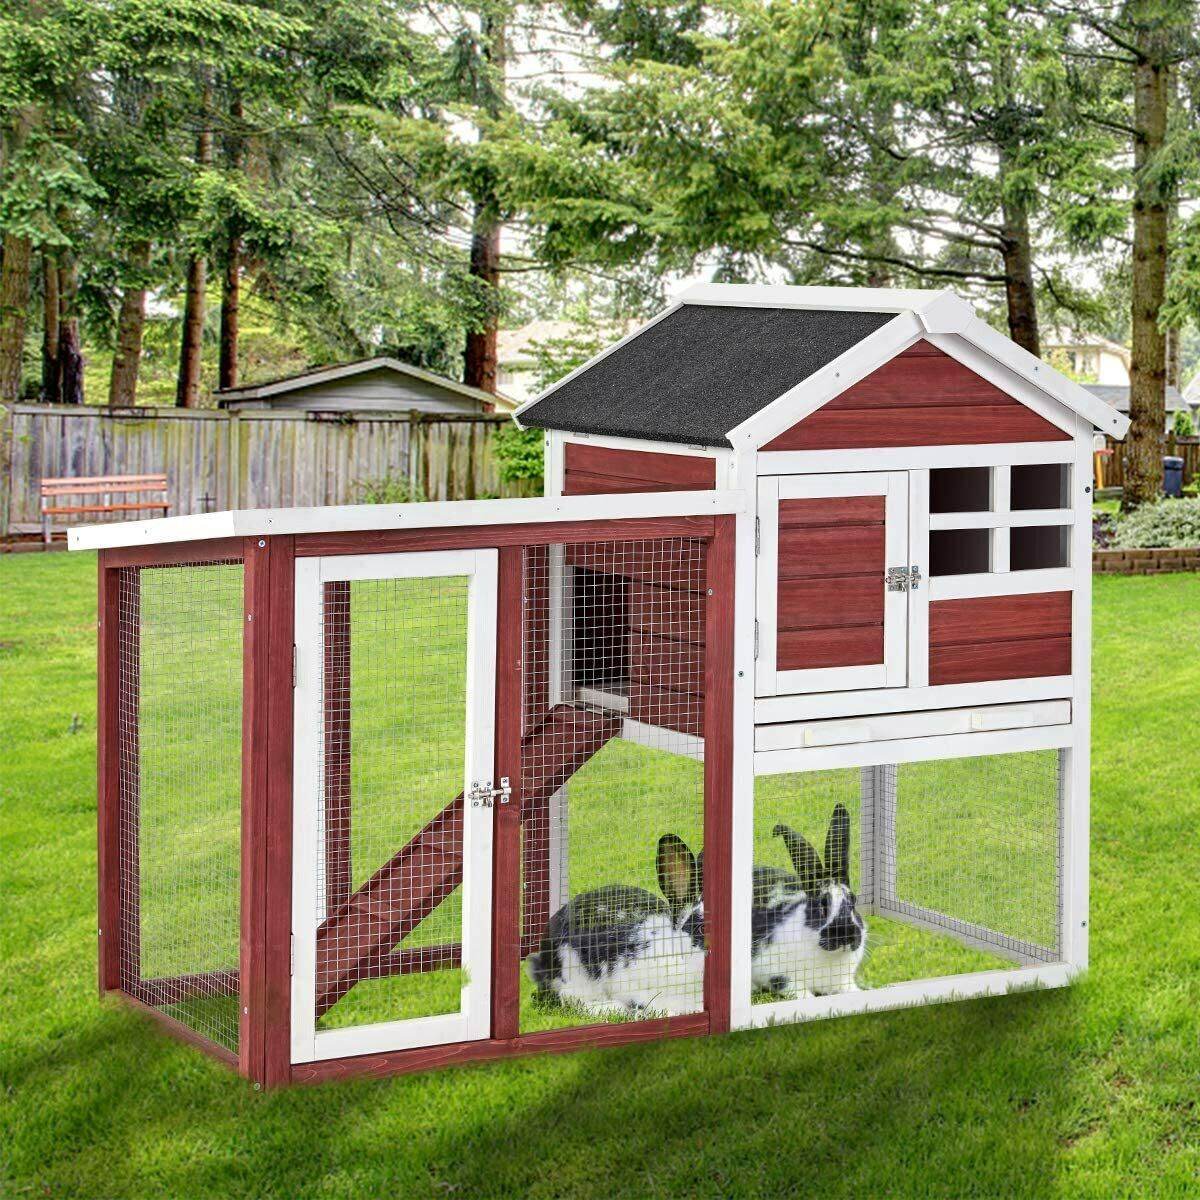 AECOJOY Wooden Rabbit Hutch Chicken Cage Hen Coop Small Animal House Cages, Hutches & Enclosure